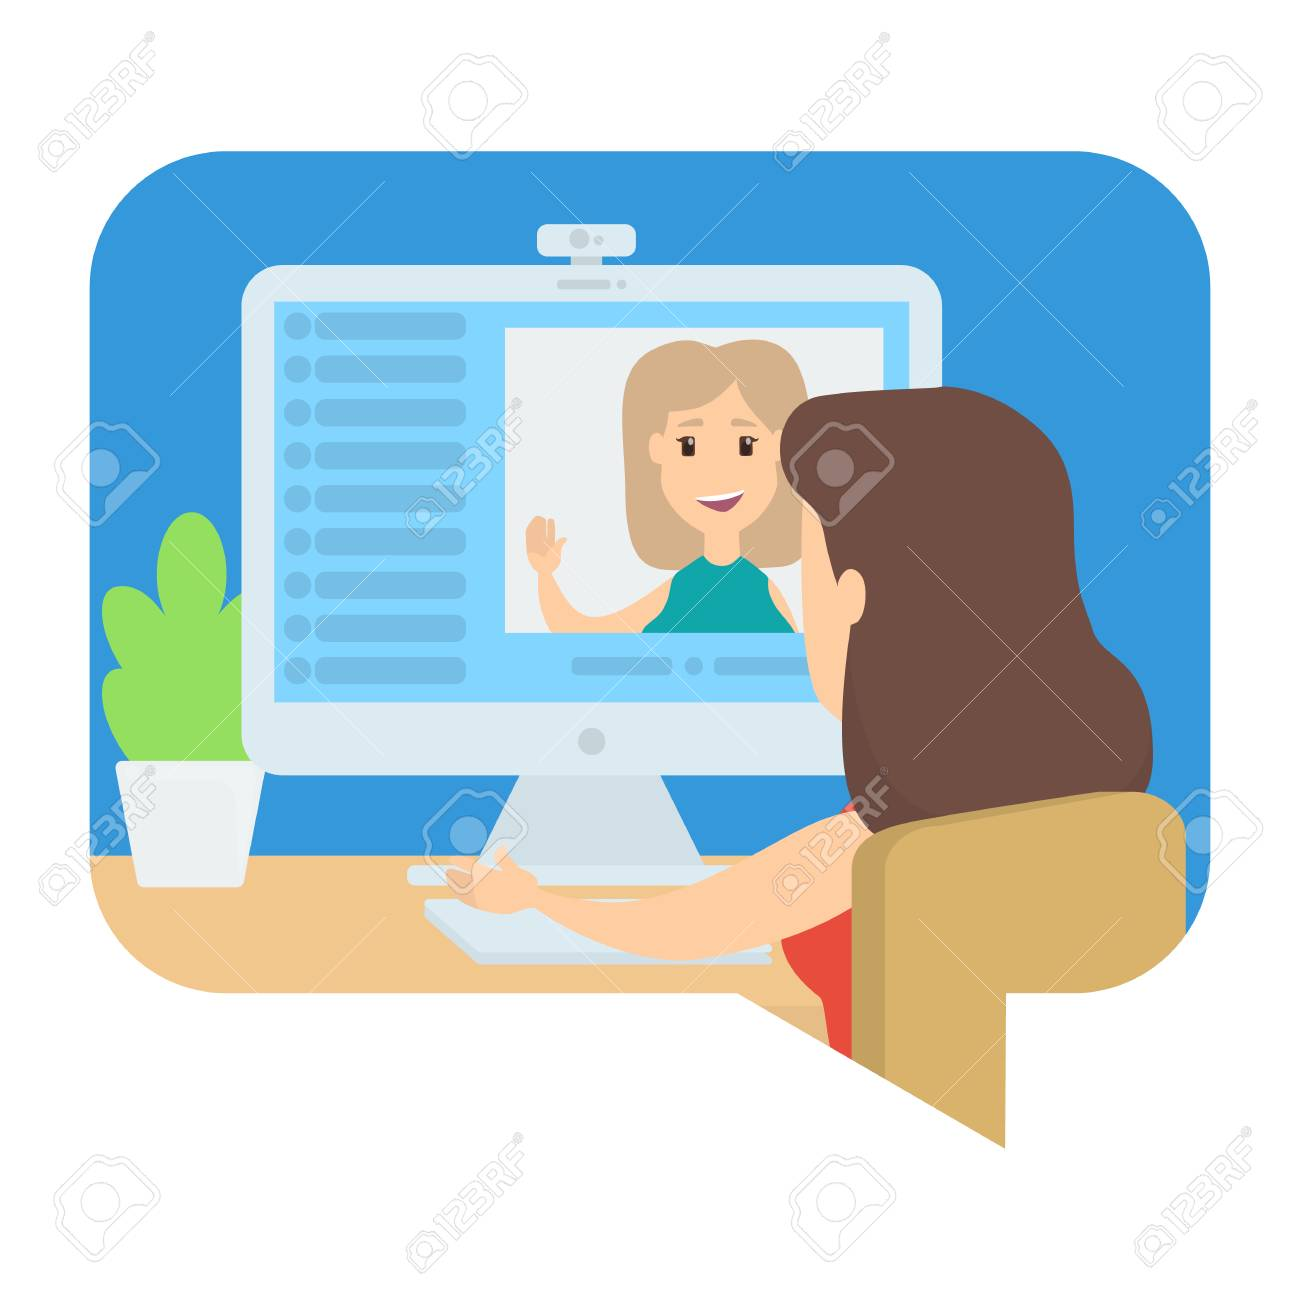 Video chat between two young girls. Communication via internet. Online conversation. Isolated vector illustration - 114893631